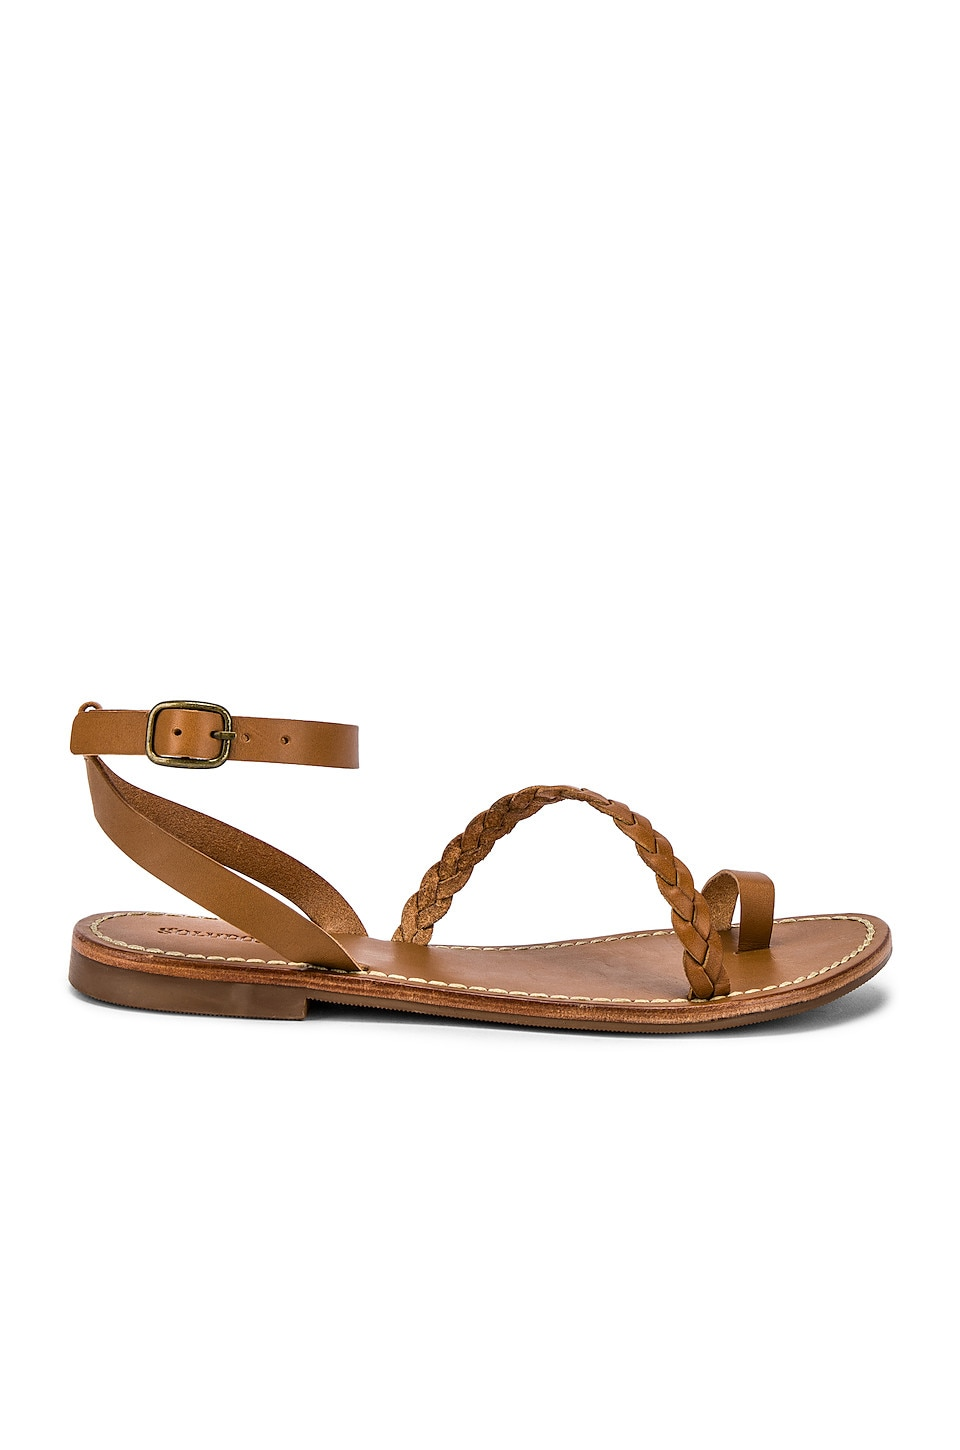 Soludos Madrid Sandal in Nude